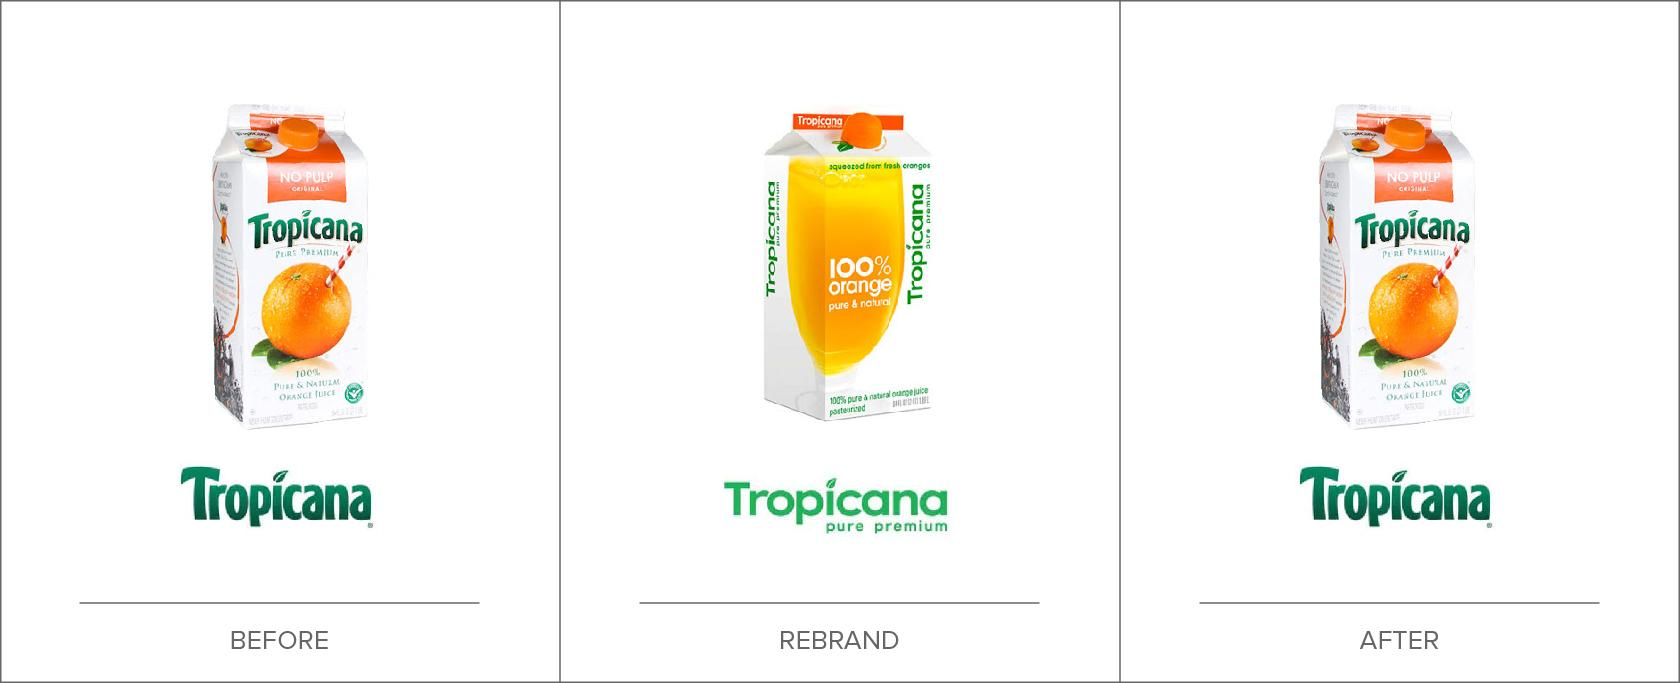 Tropicana's brand design strategy ignored brand recognition.